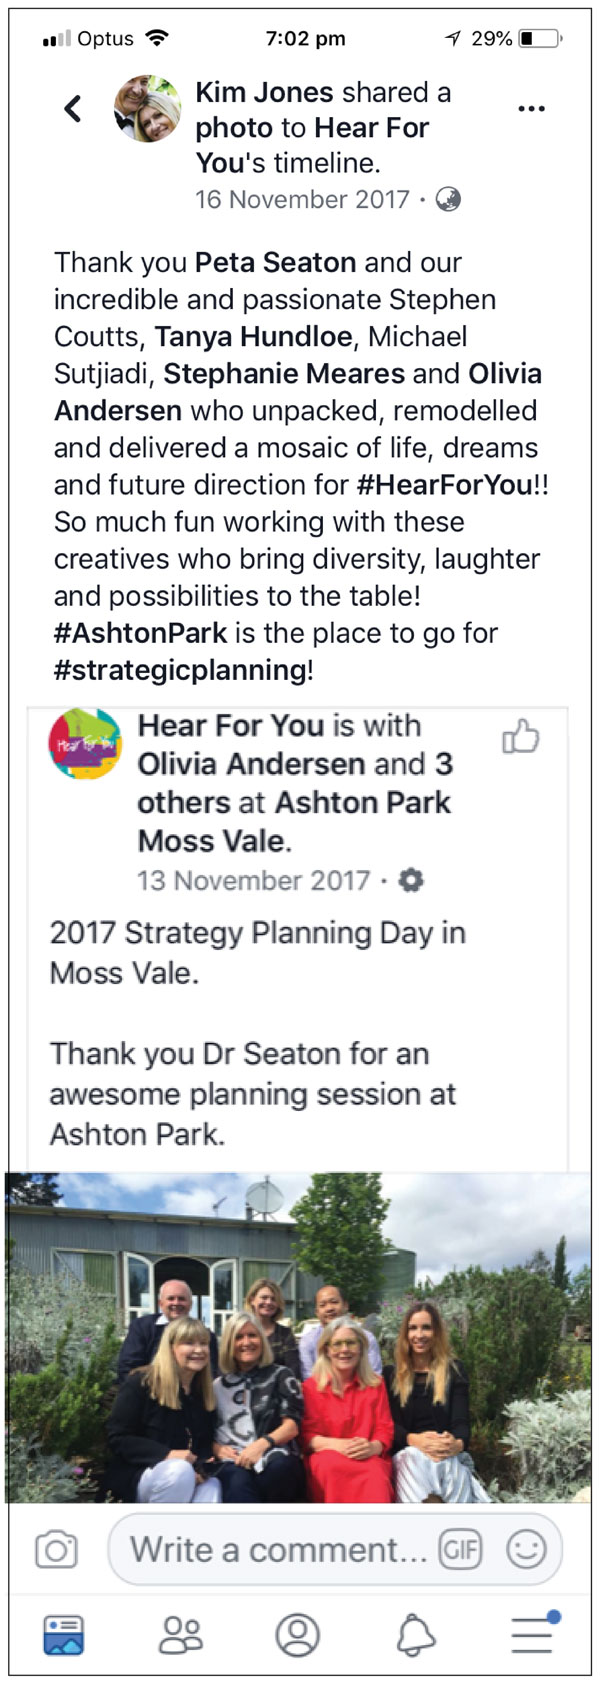 Peta Seaton Strategic Consulting with Hear For You